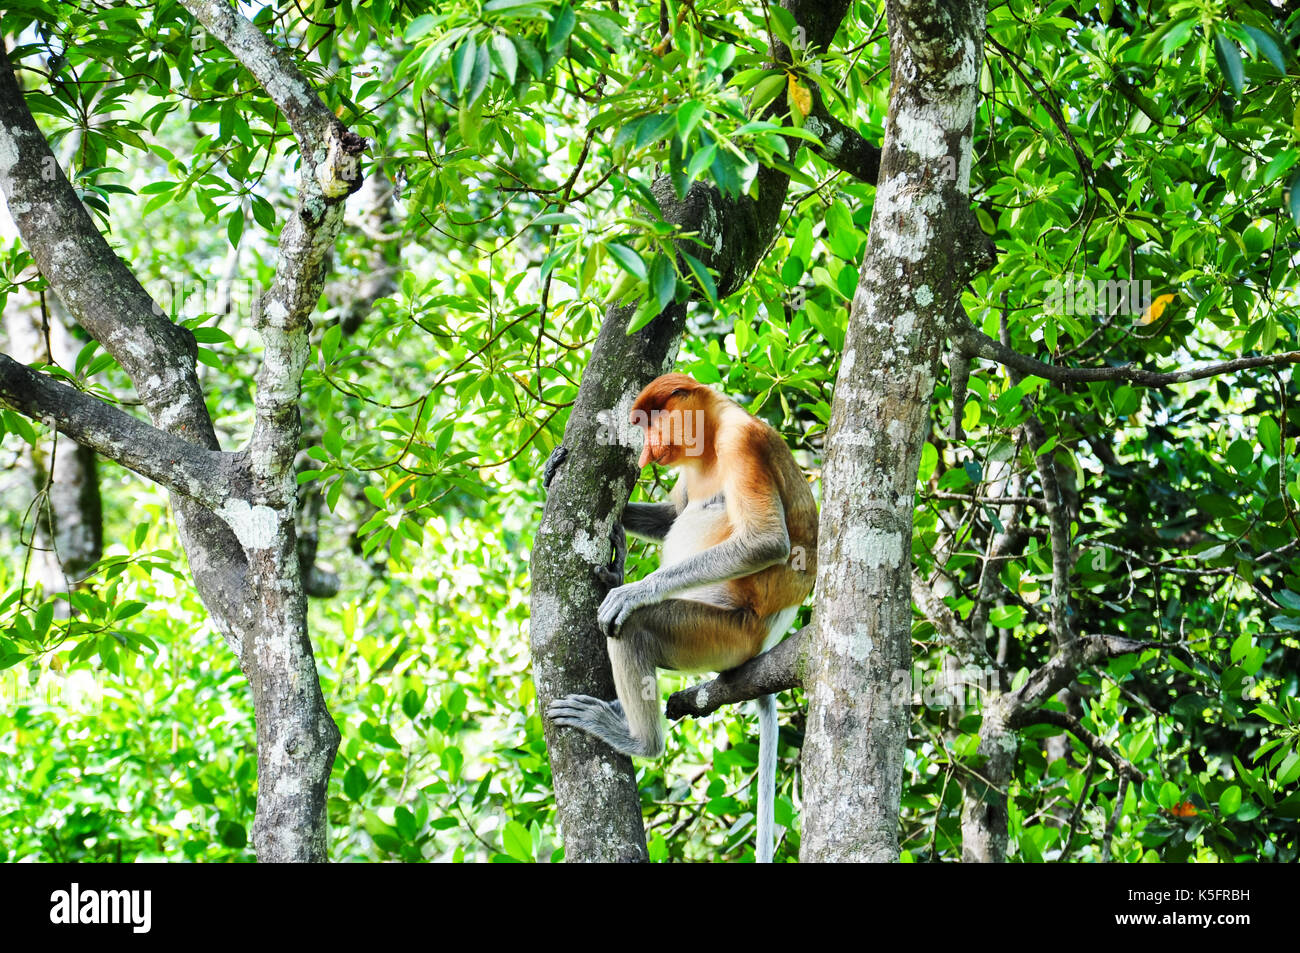 The proboscis monkey (Nasalis larvatus) aka long-nosed monkey, or bekantan in Indonesia or bayau in Sabah, is an Old World monkey that is endemic to t - Stock Image